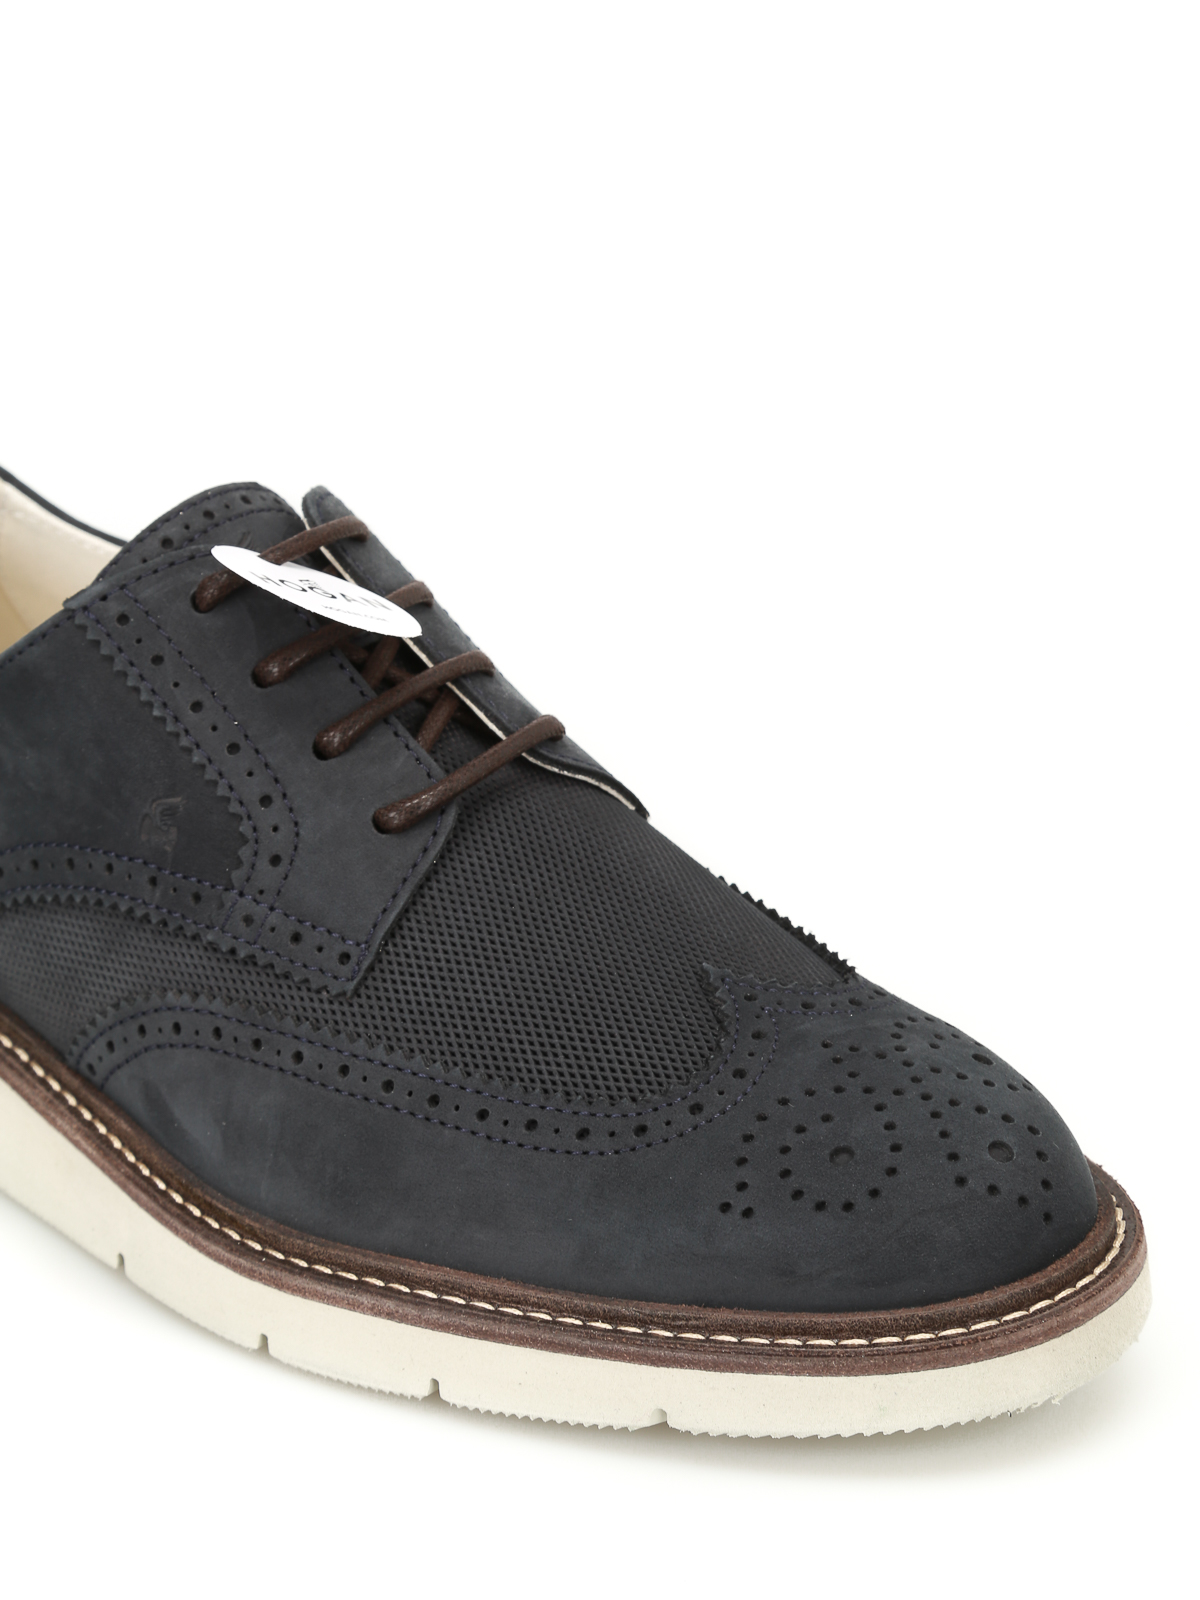 Hogan H322 Derby nubuck brogue shoes آکسفورد